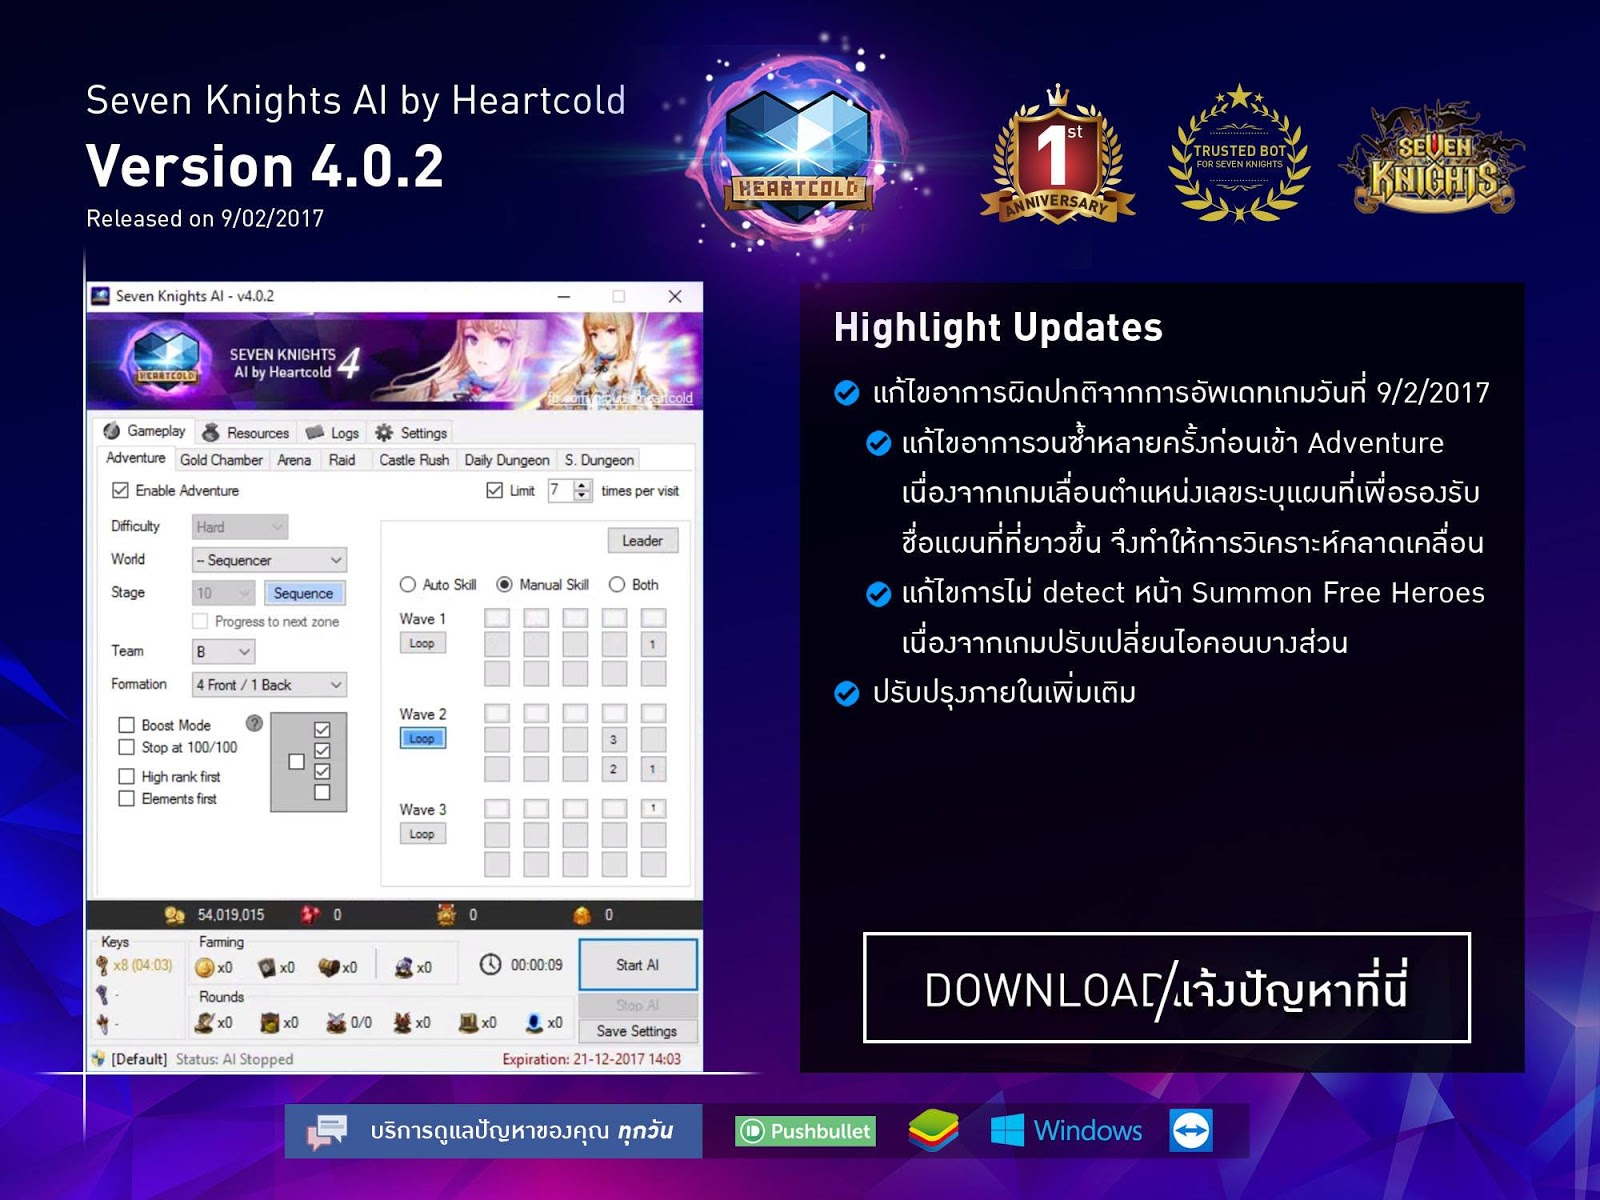 Seven Knights Fans - Seven Knights Tips, Guides, Videos: Download